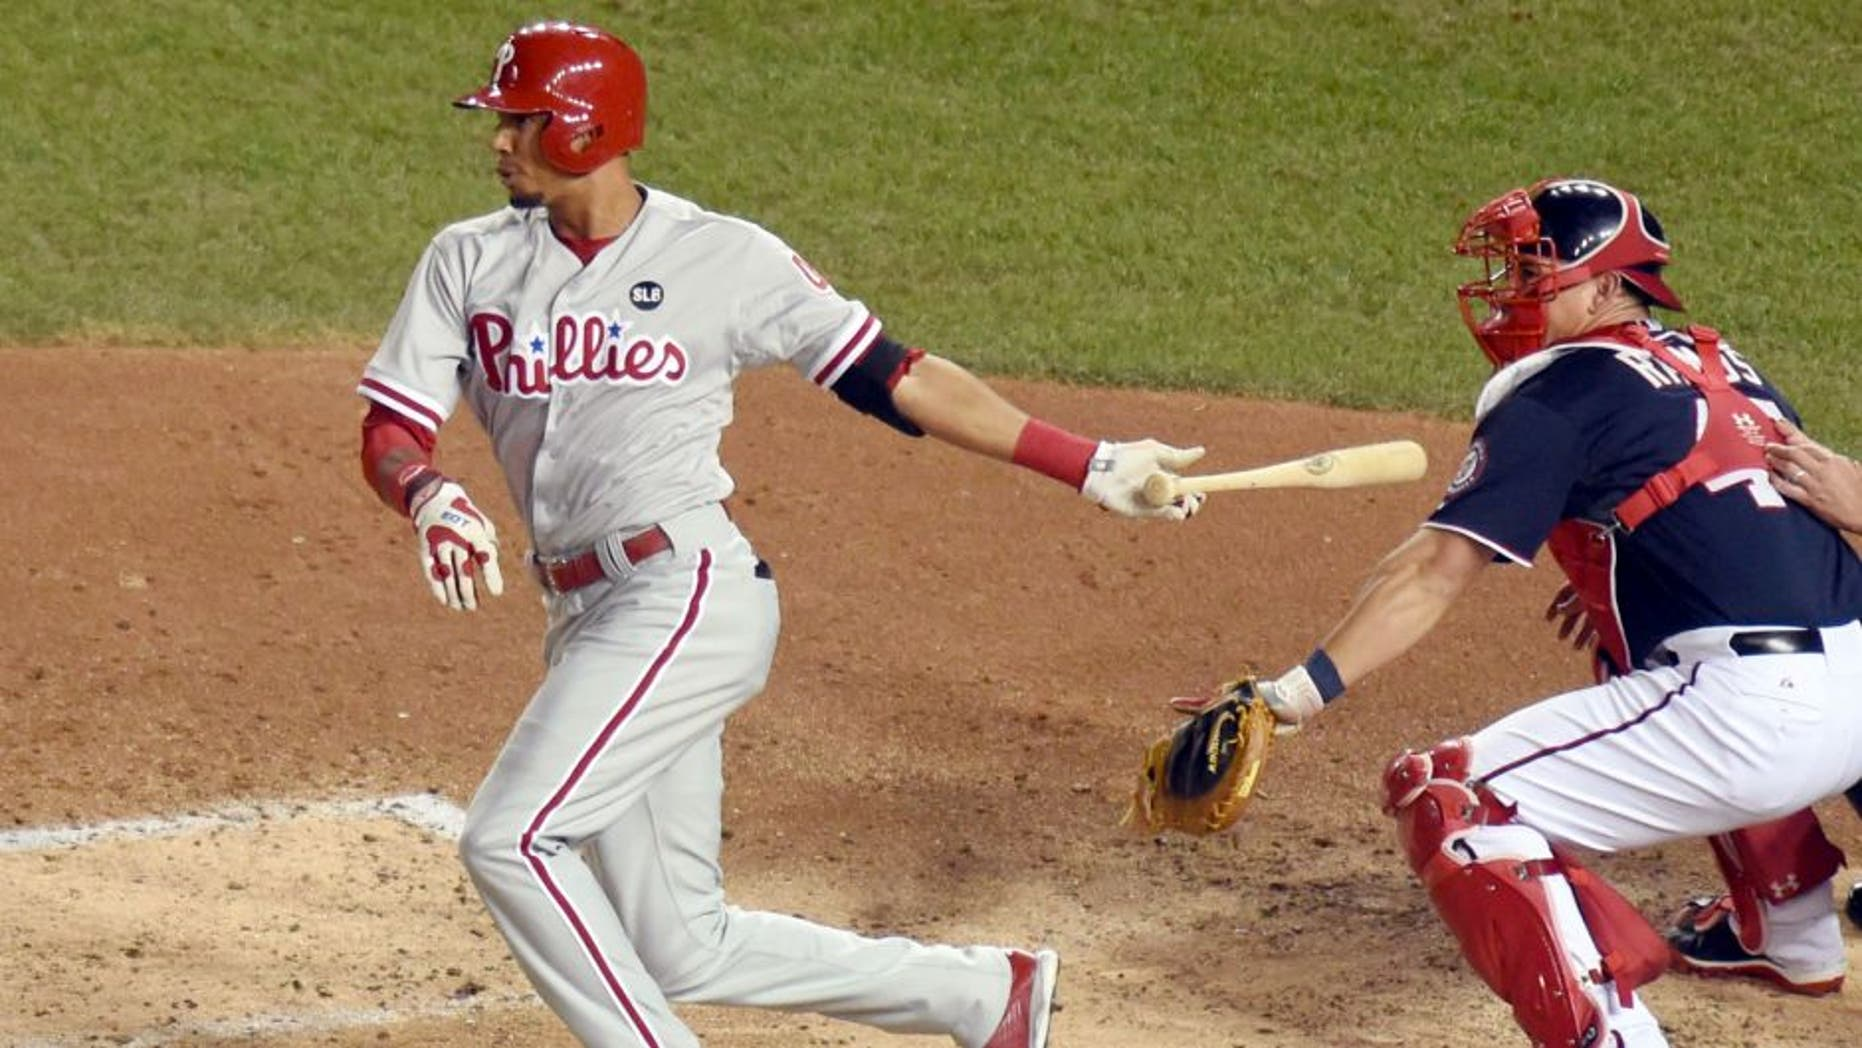 WASHINGTON, DC - SEPTEMBER 25: Aaron Altherr #40 of the Philadelphia Phillies hits a inside the park grand slam homer in the second inning during a baseball game against the Washington Nationals at Nationals Park on September 25, 2015 in Washington, DC. (Photo by Mitchell Layton/Getty Images)